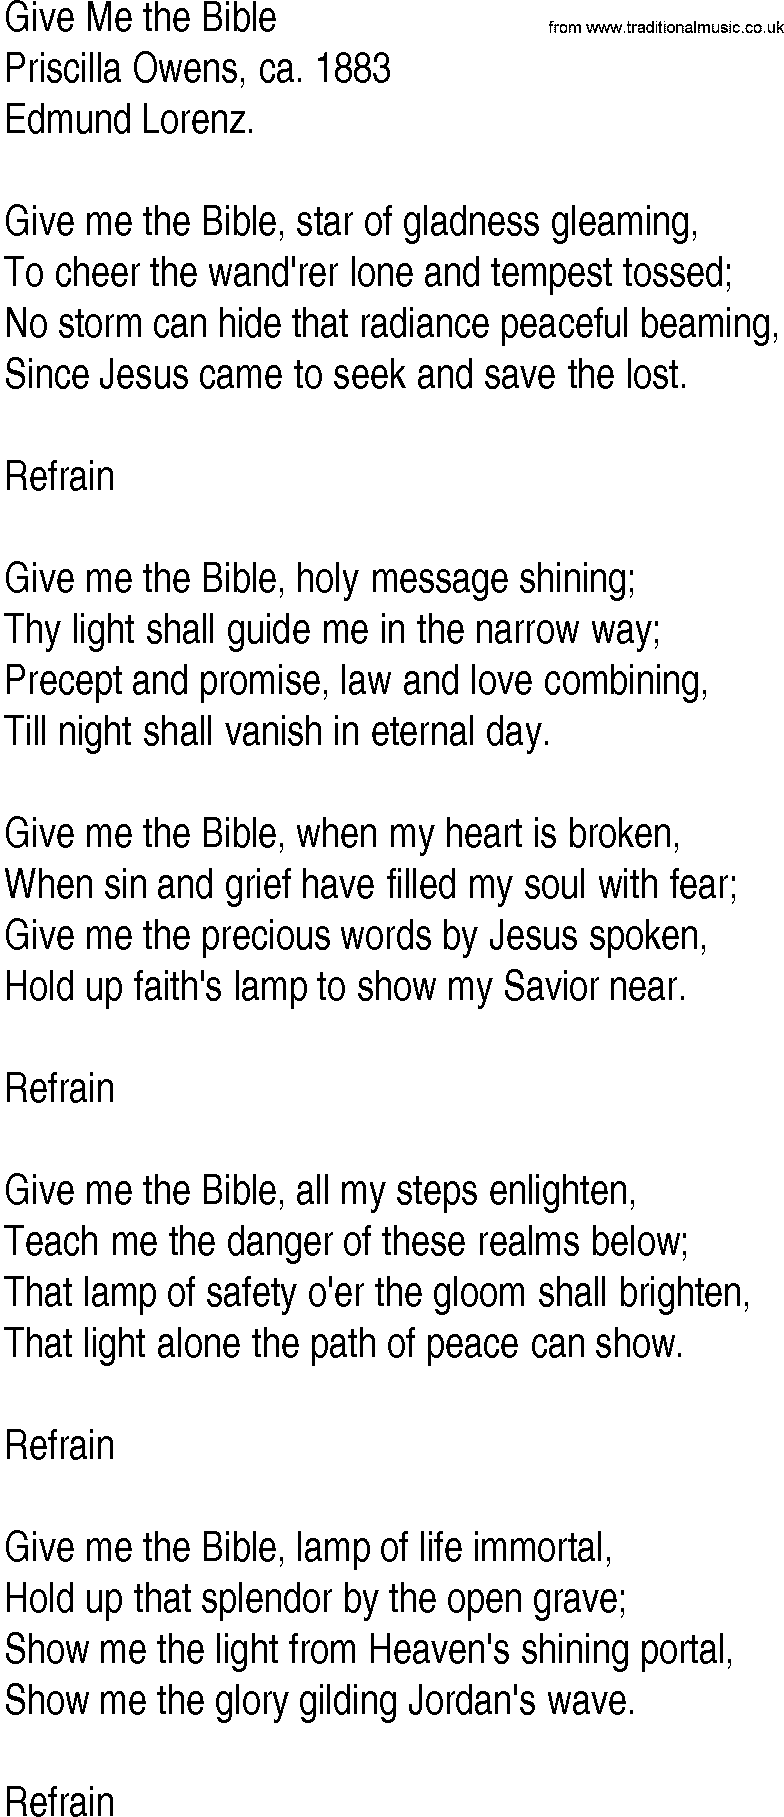 Hymn and Gospel Song Lyrics for Give Me the Bible by